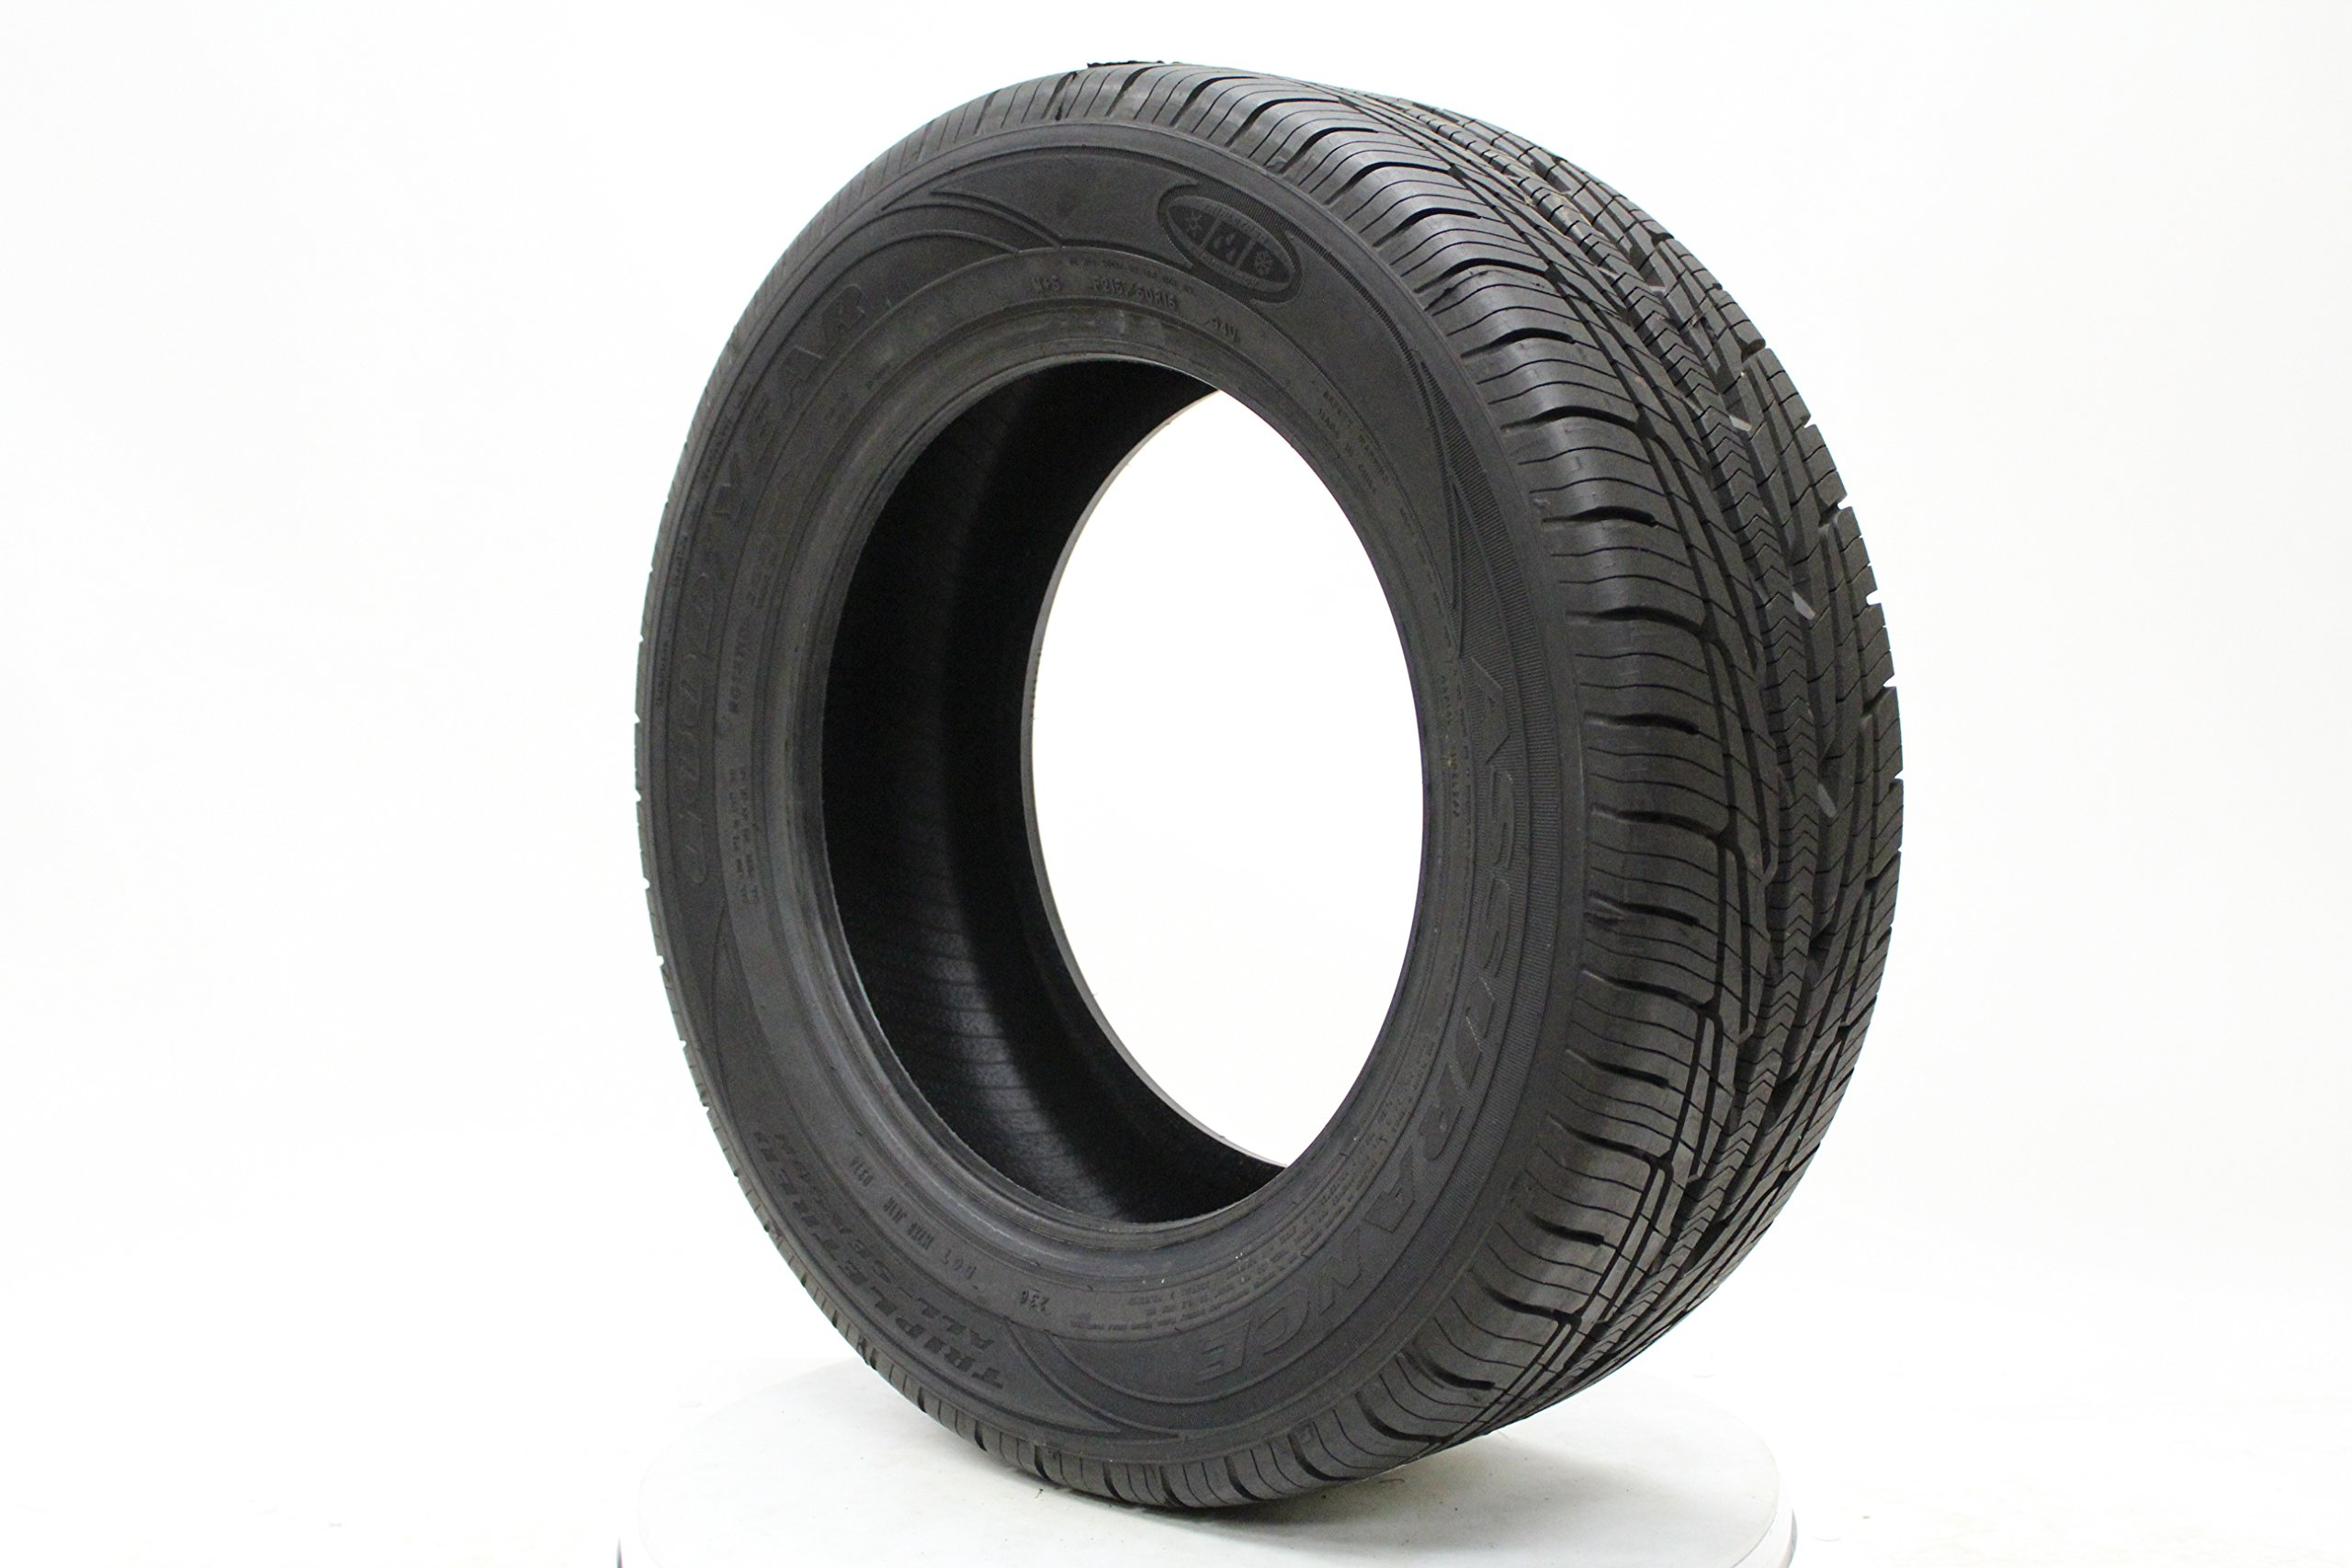 Goodyear A/Ssurance TripleTred A/S Radial – 205/55R16 94H